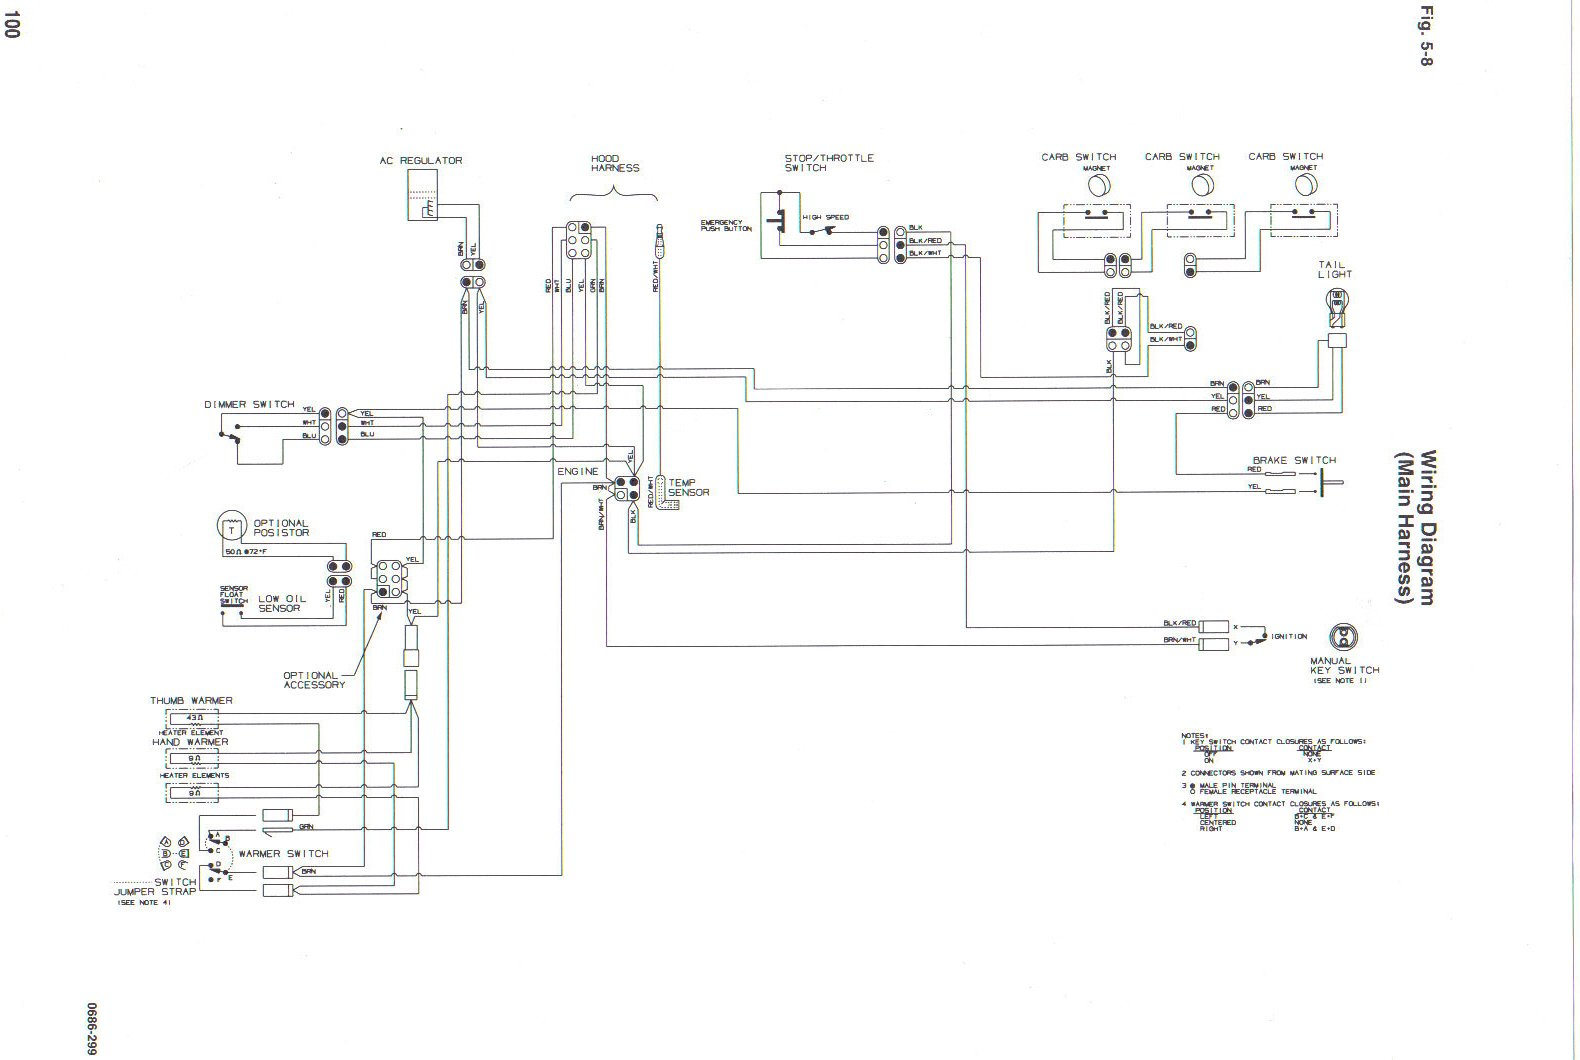 female cat 3 wiring diagram